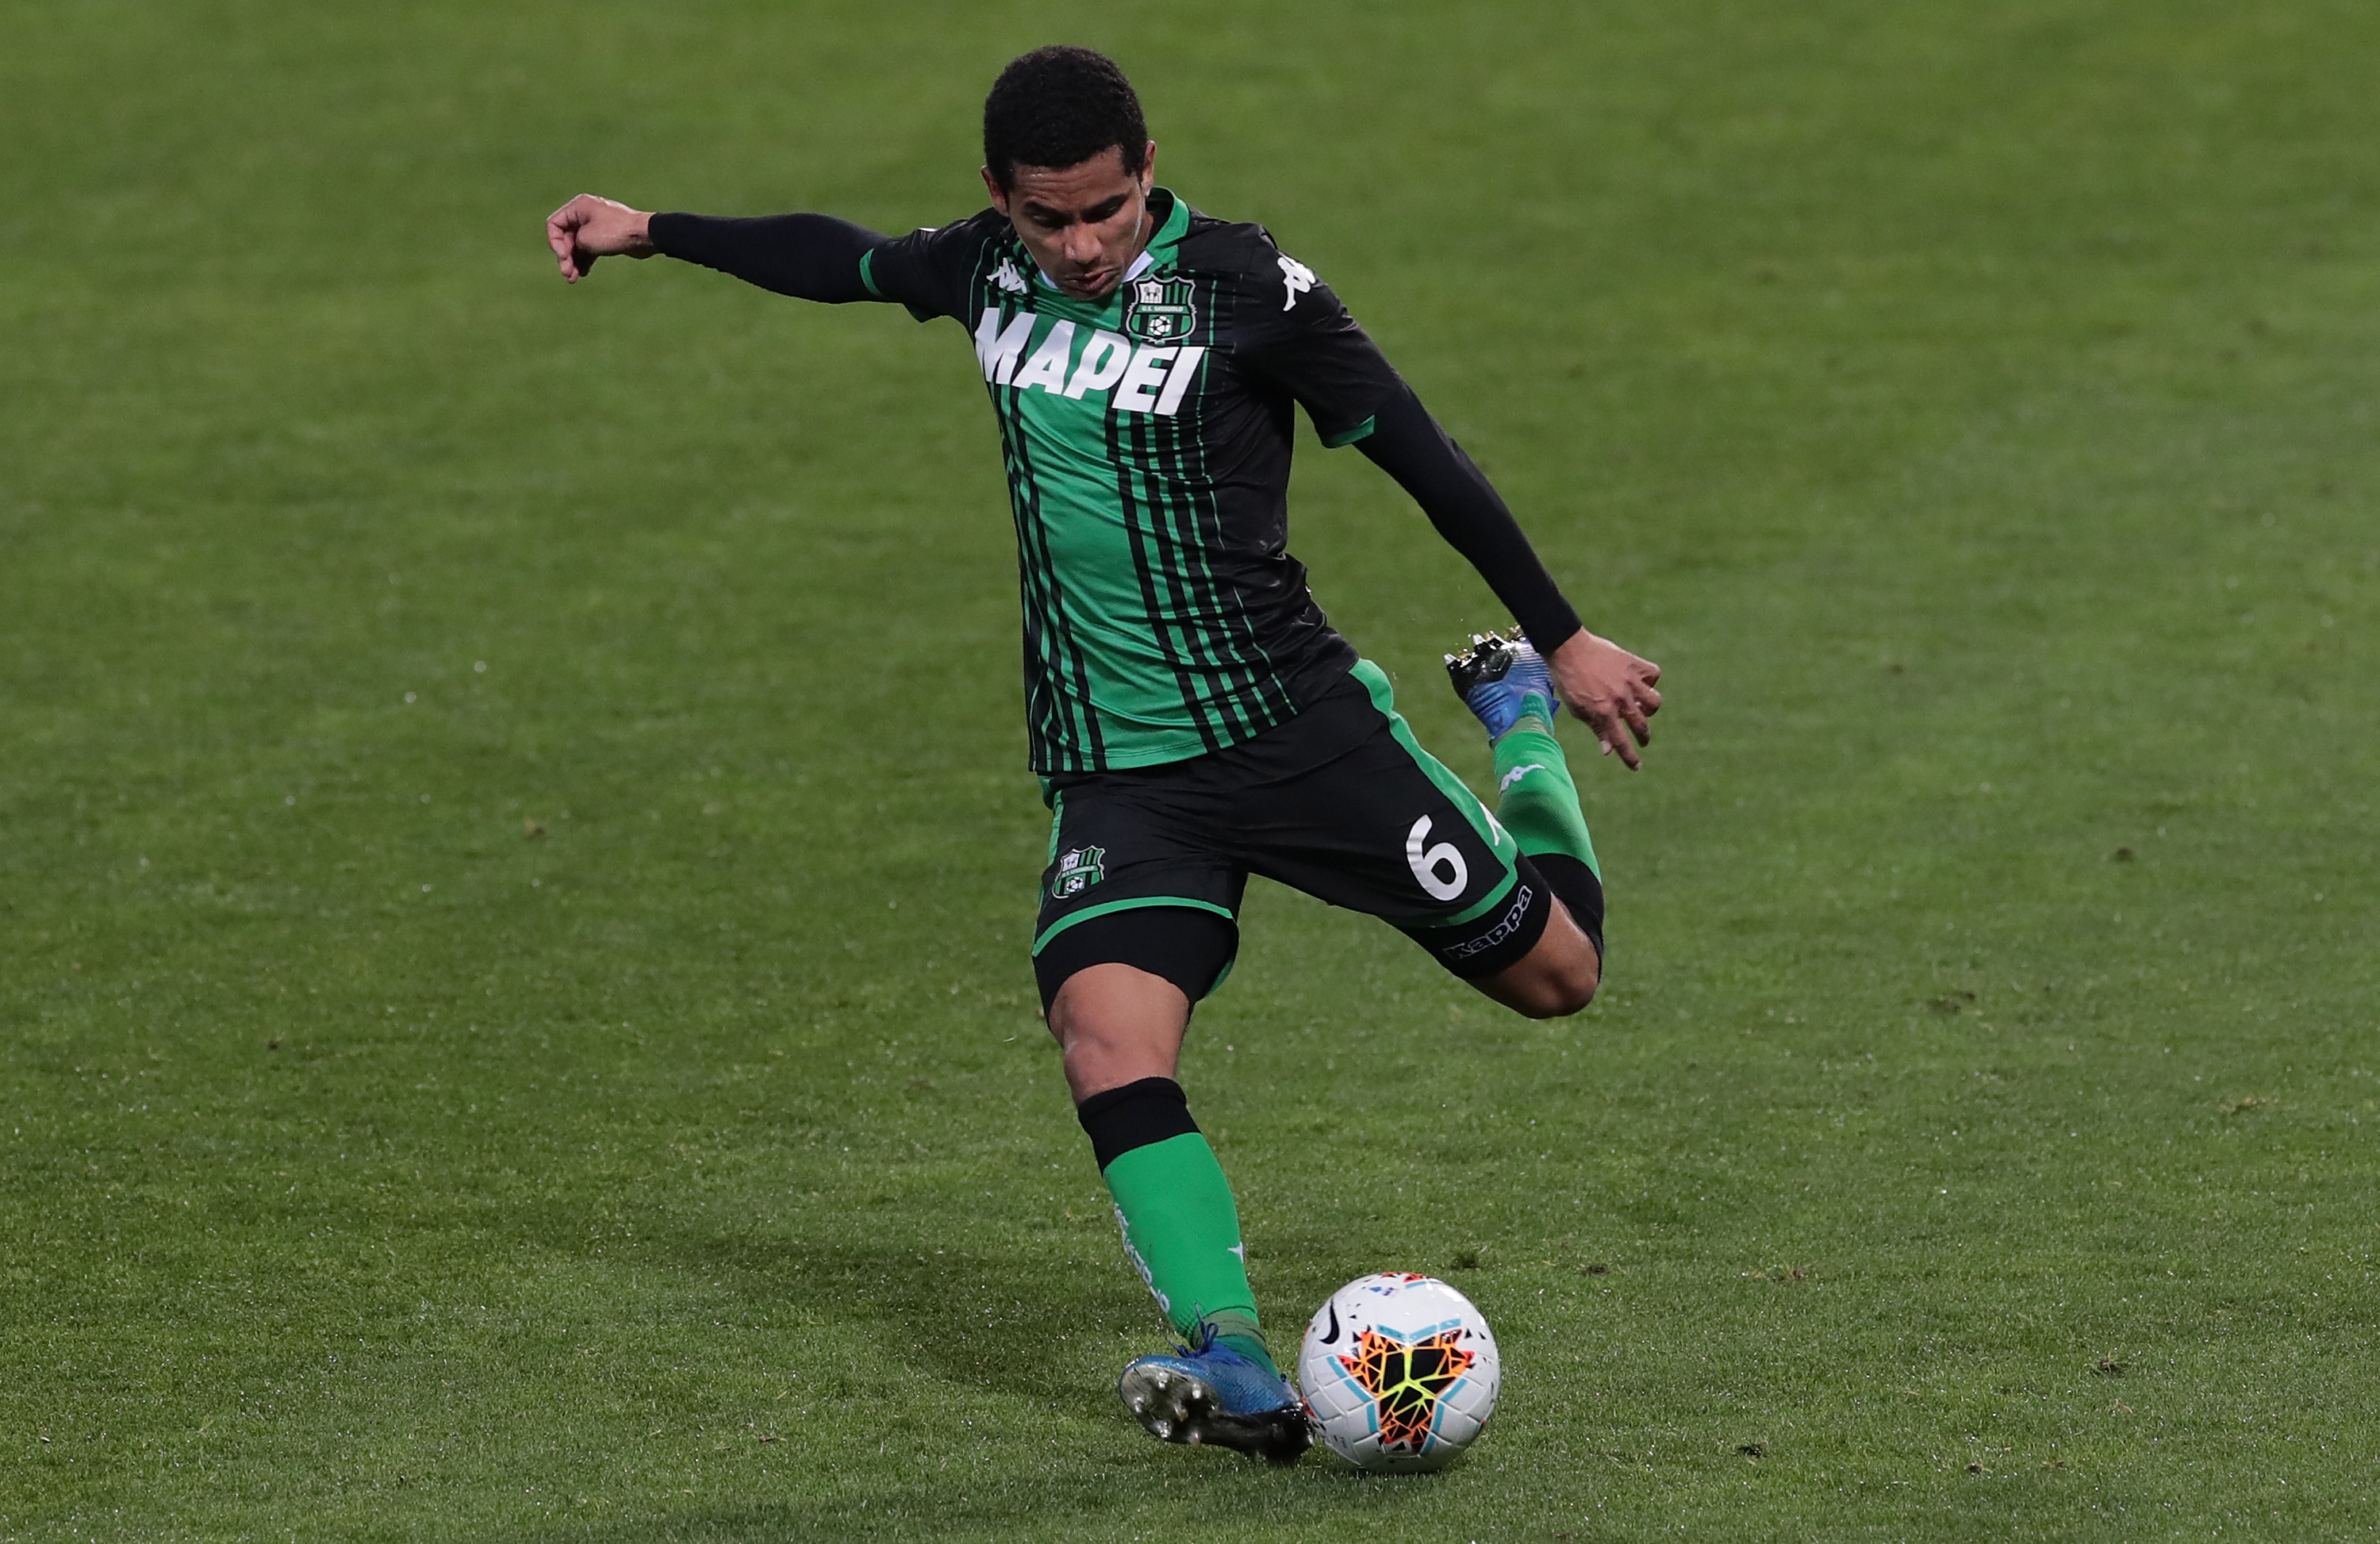 Newcastle United in talks to recruit Rogerio who is in action in the photo